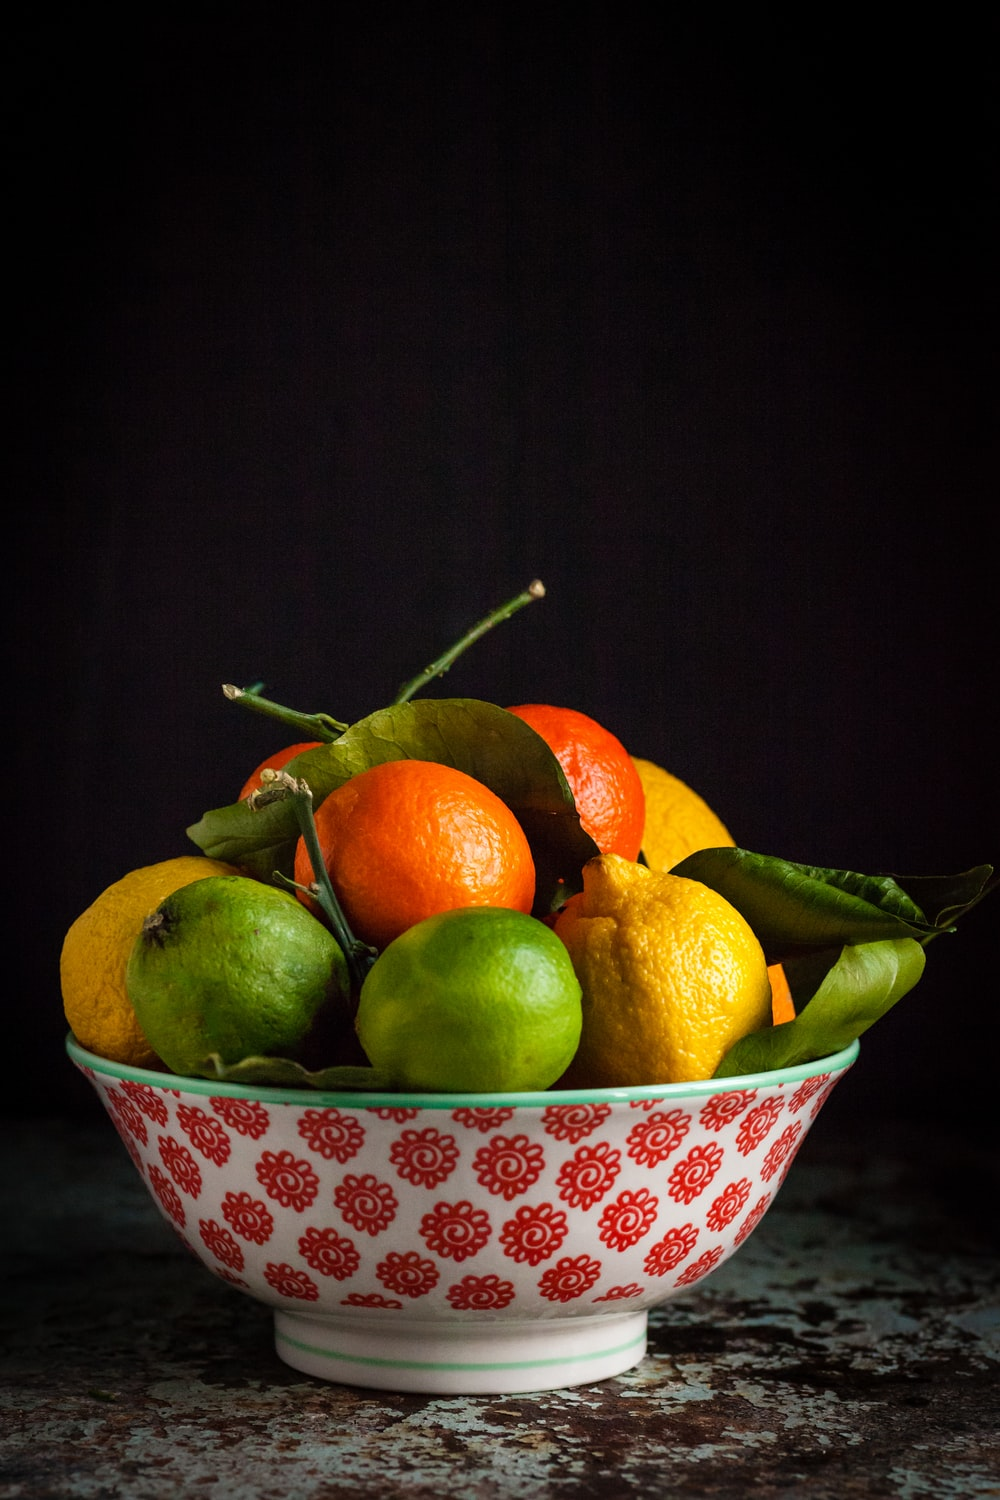 orange and green fruits on bowl